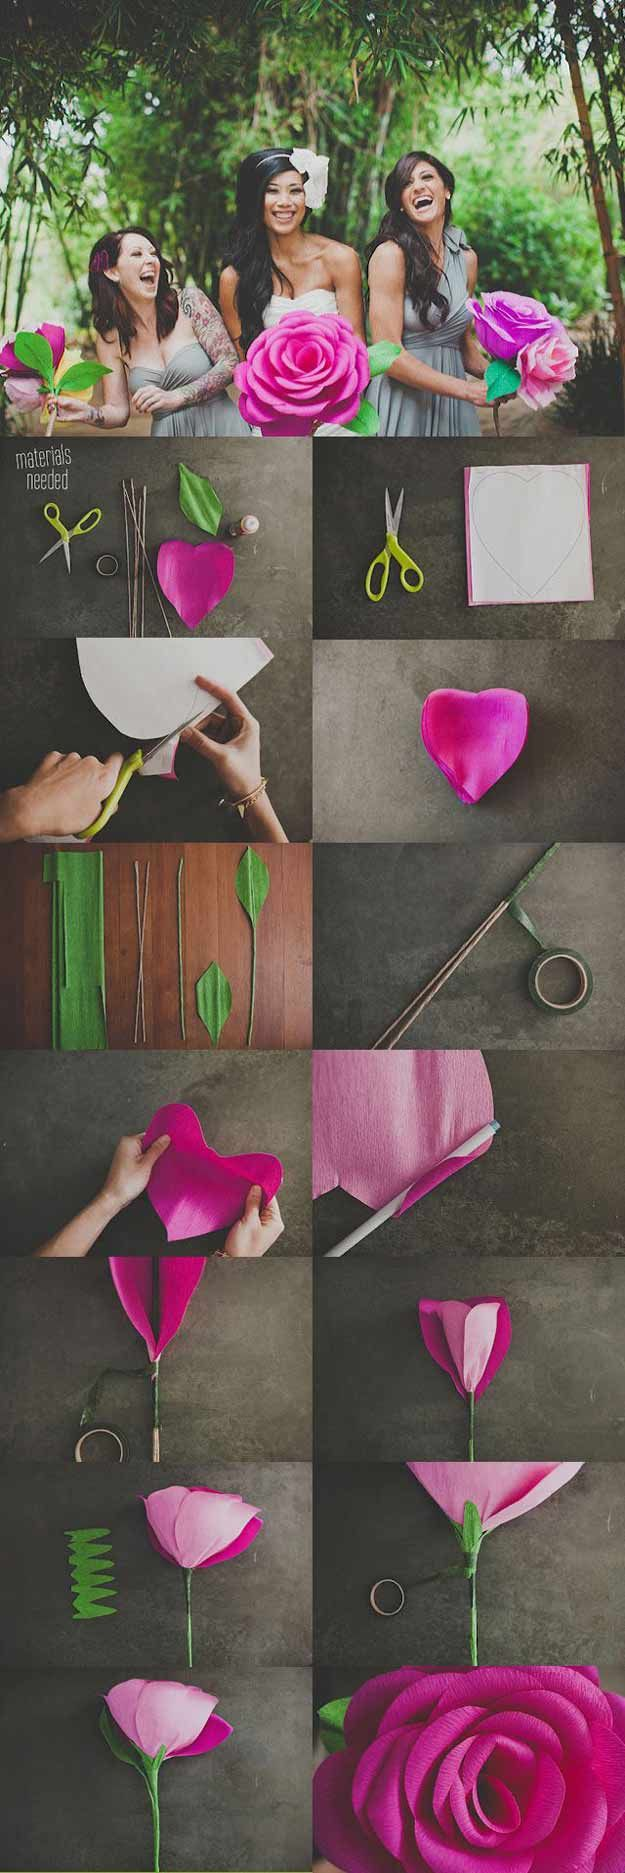 Unique Homemade DIY Photo Booth Props | http://diyready.com/19-cool-diy-photo-booth-props/